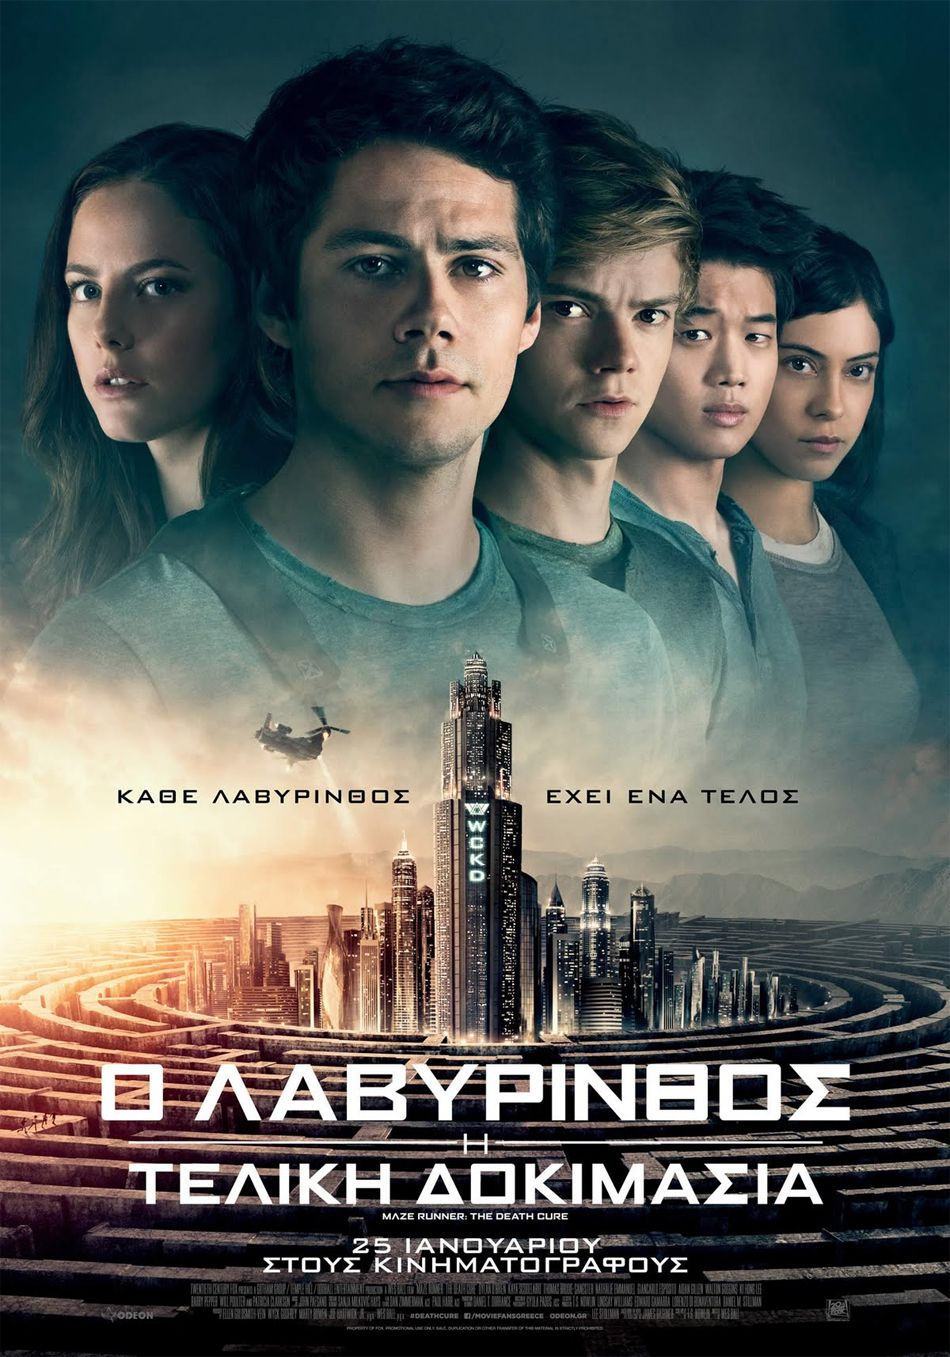 O Λαβύρινθος: Η Τελική Δοκιμασία (Maze Runner: The Death Cure) Poster